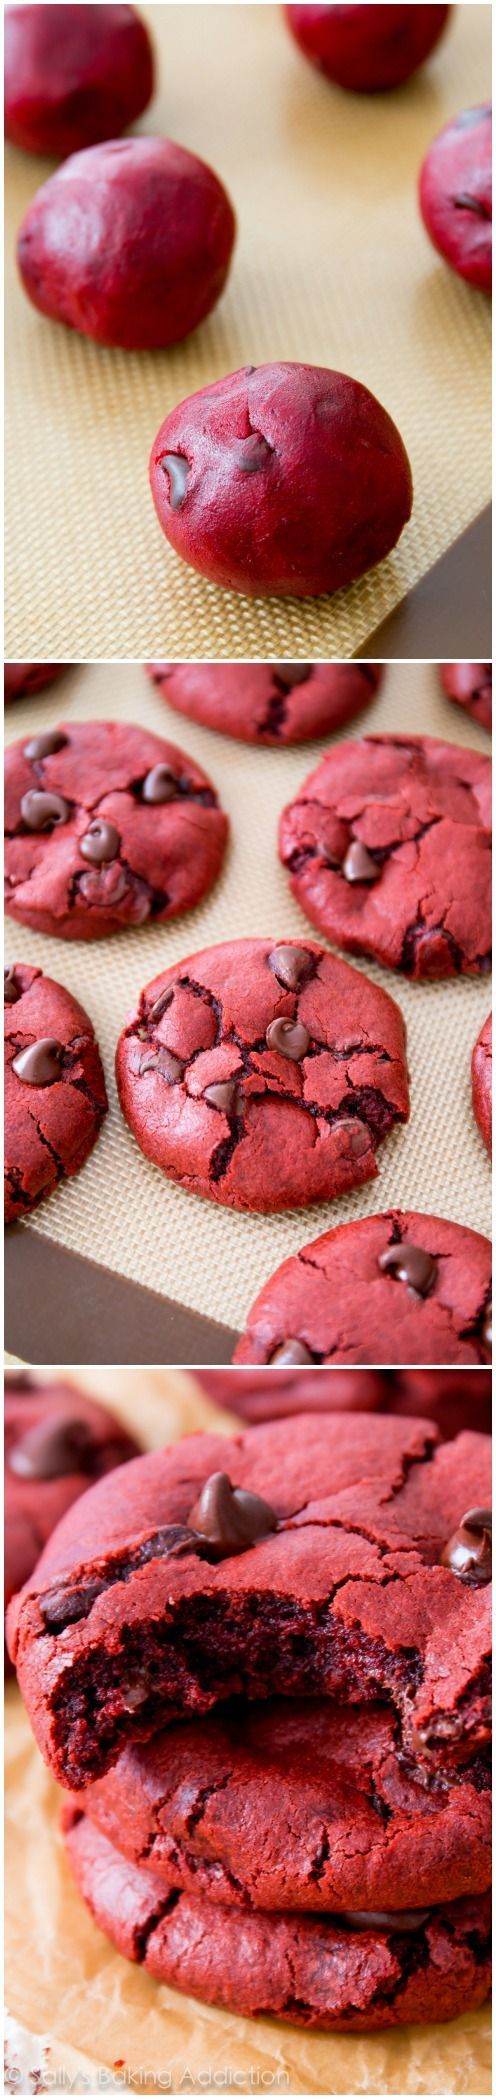 Red Velvet Chocolate Chip Cookies | Recipe | Chip cookies, Red ...